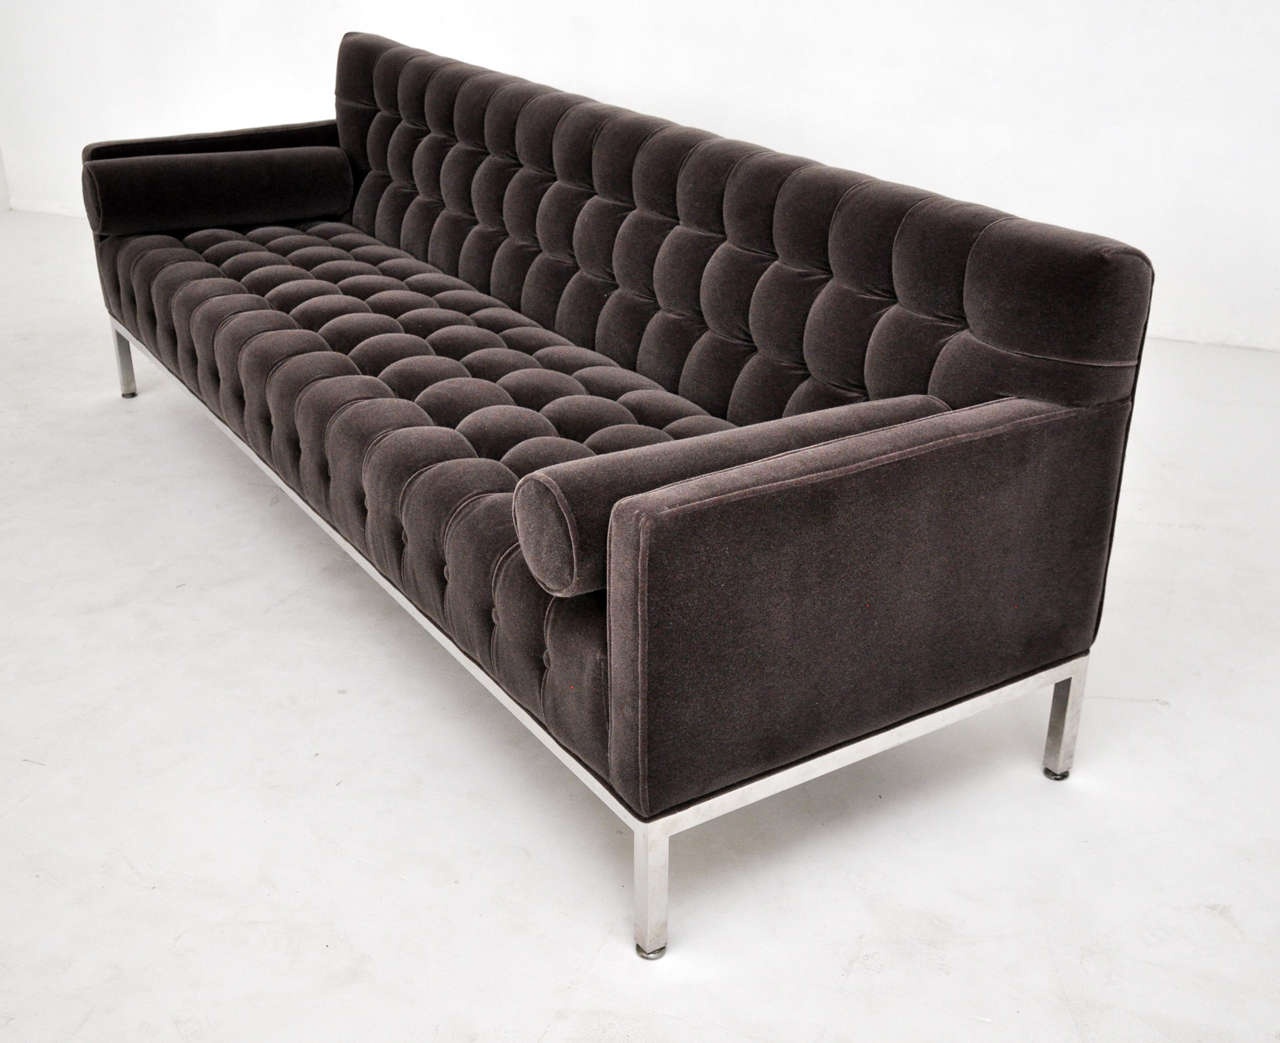 Tufted Baker Sofa 2